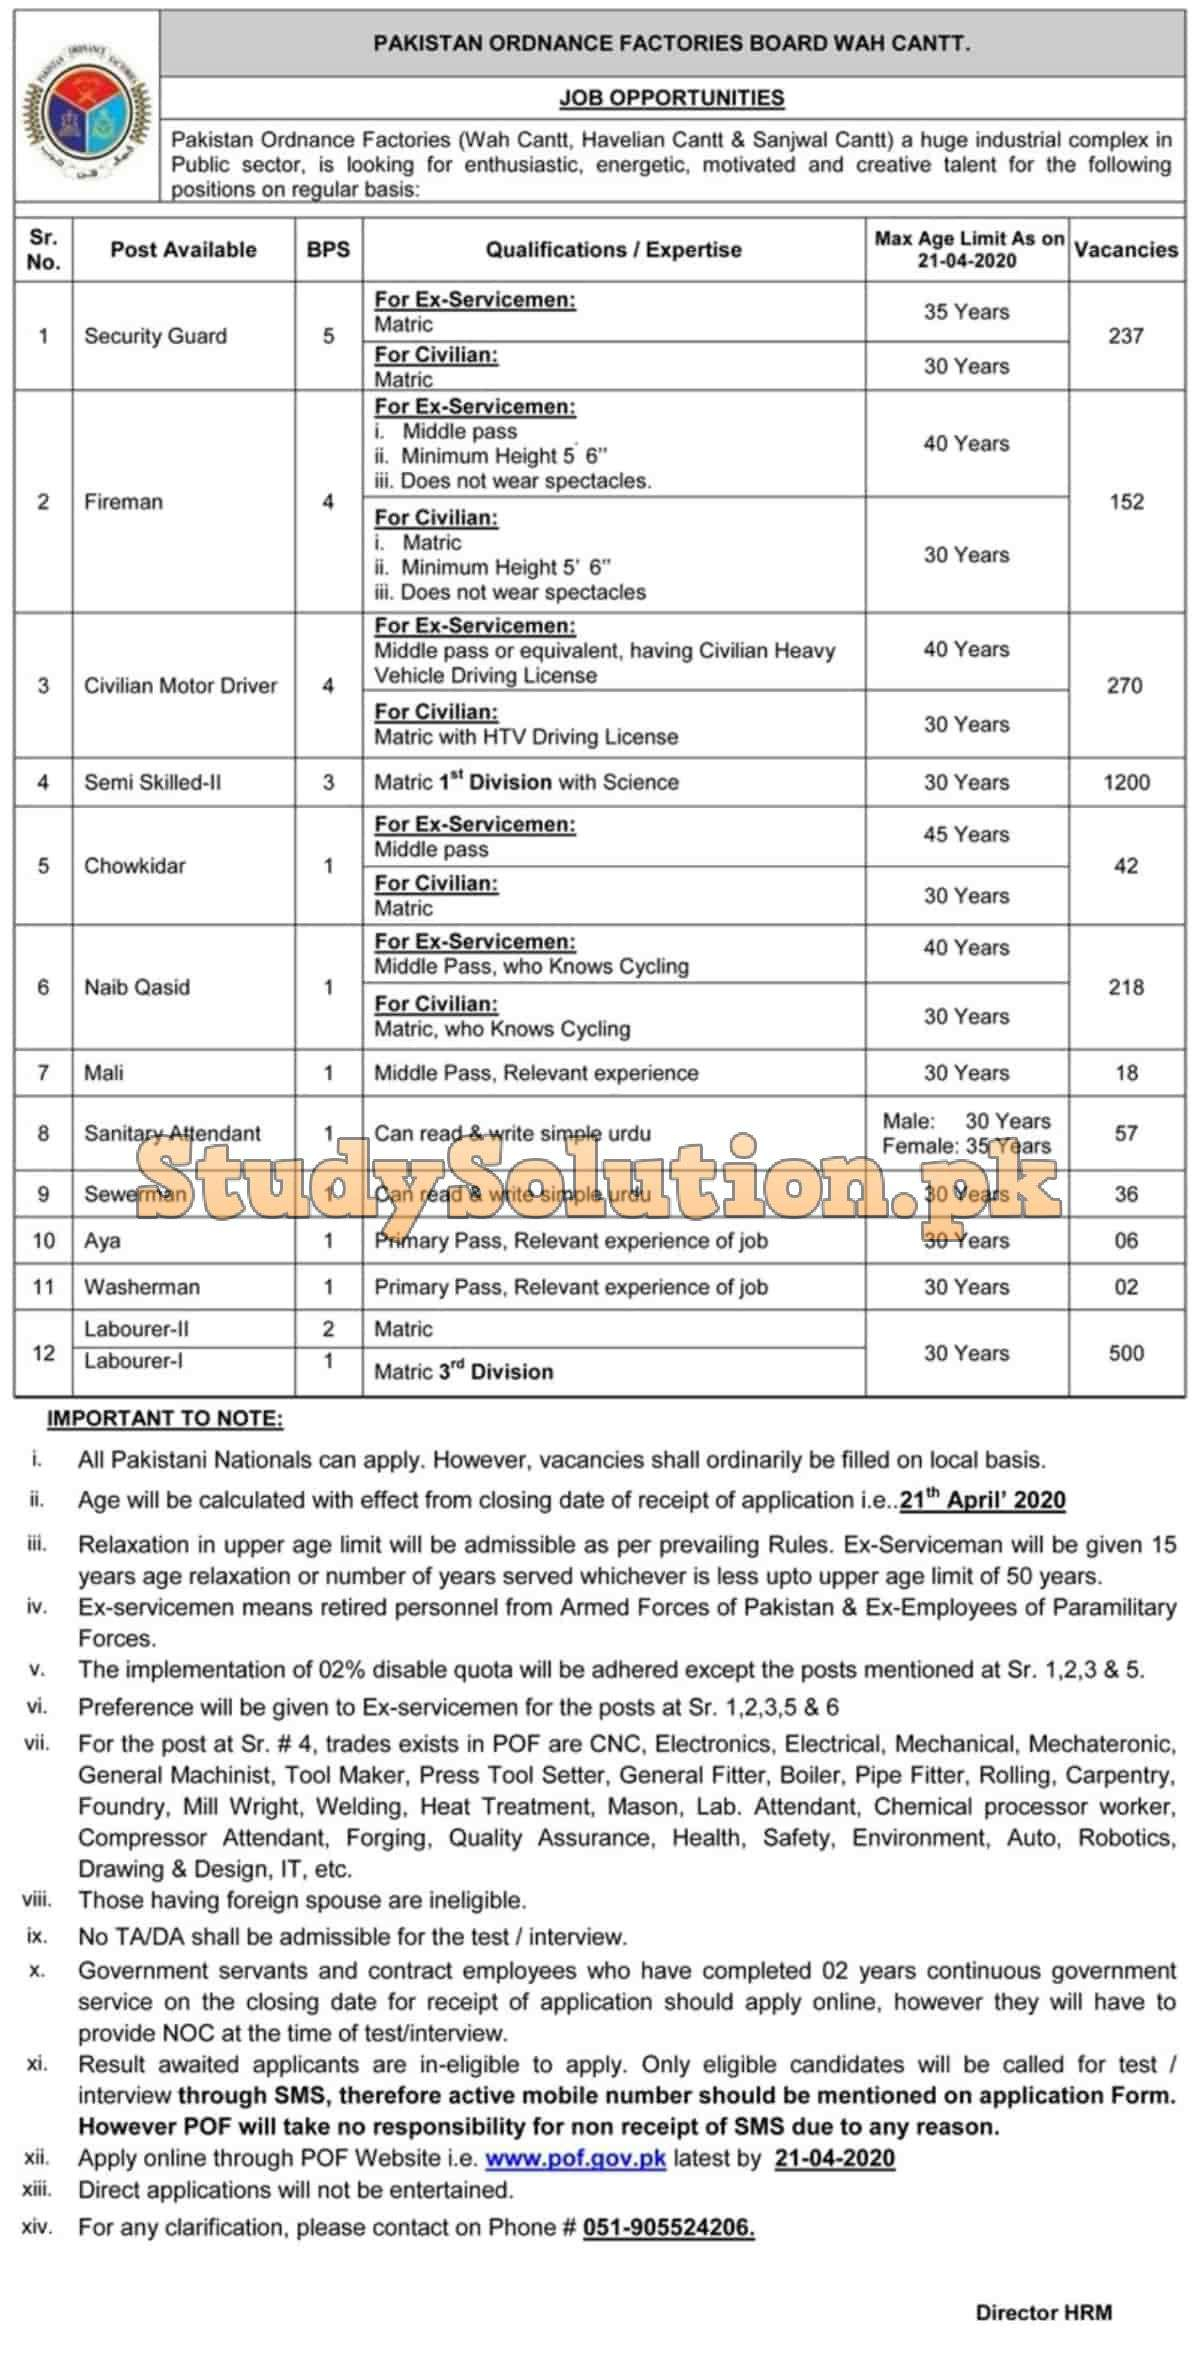 Pakistan Ordnance Factories Board POF Wah Cantt Jobs 2020